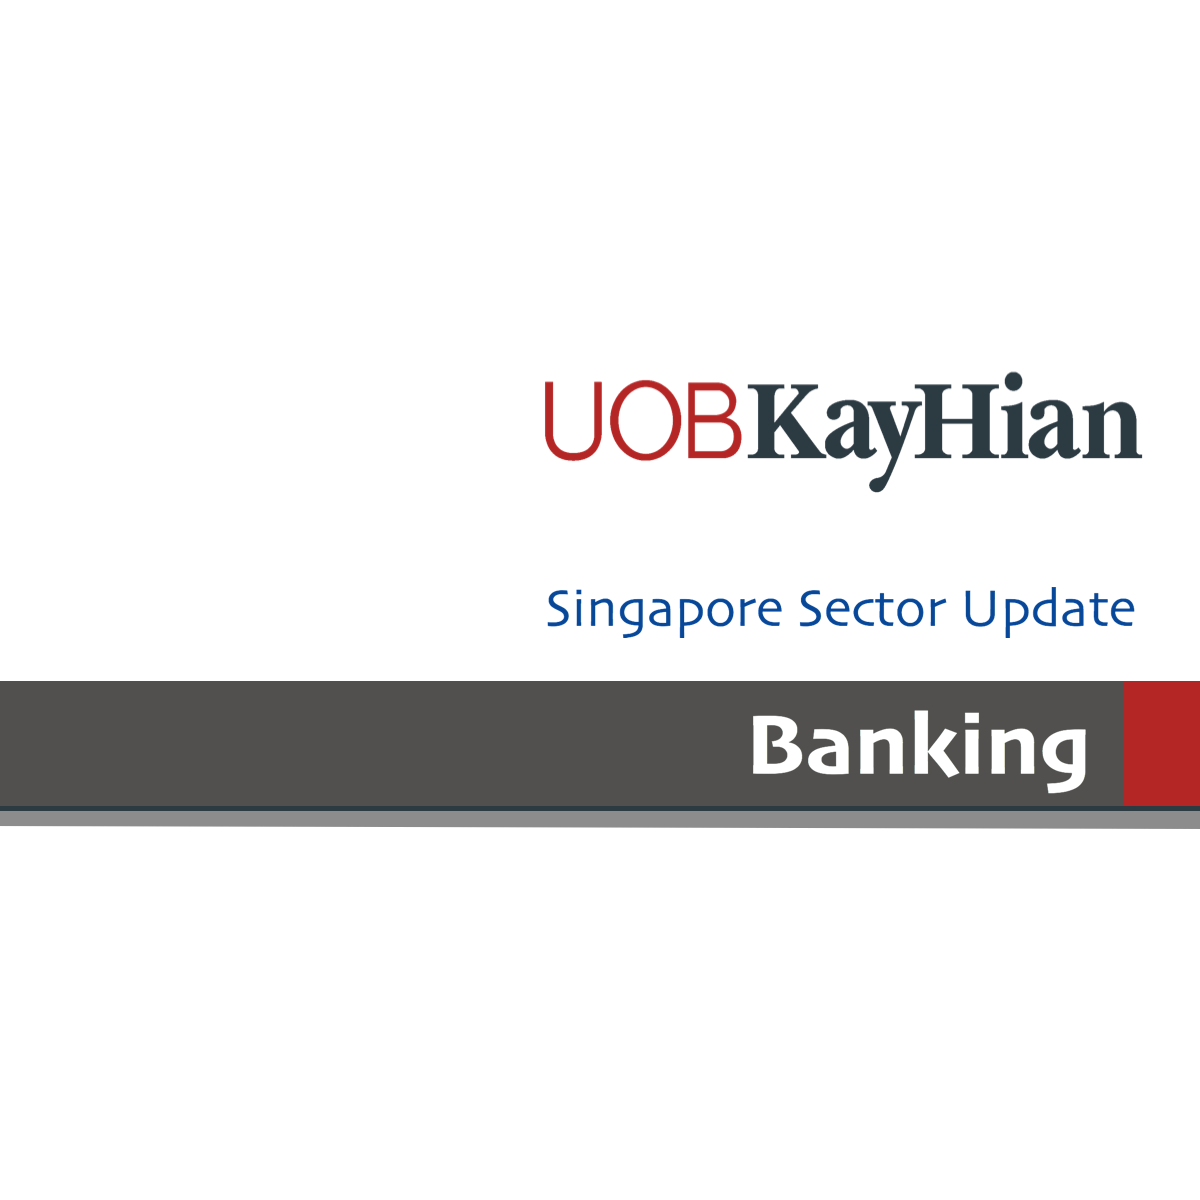 Singapore Banking - UOB Kay Hian 2017-01-06: Upside From Rate Hikes, Limited Downside From O&G